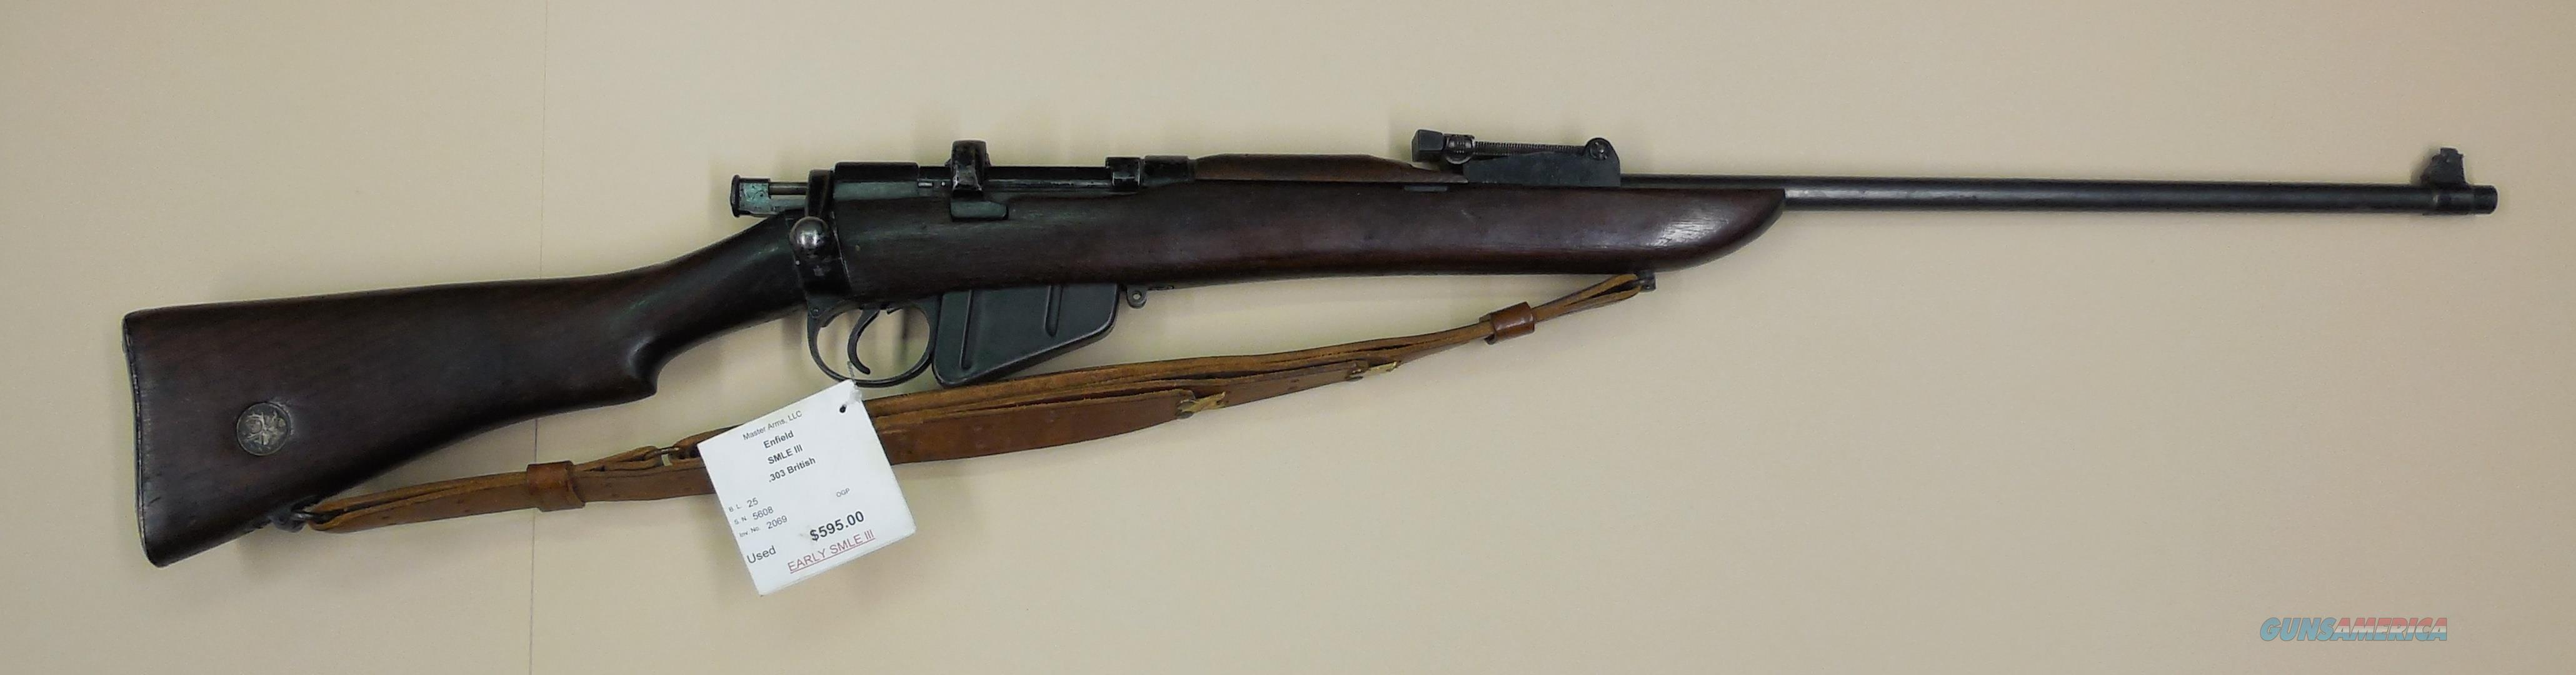 ENFIELD SMLE lll  Guns > Rifles > Enfield Rifle